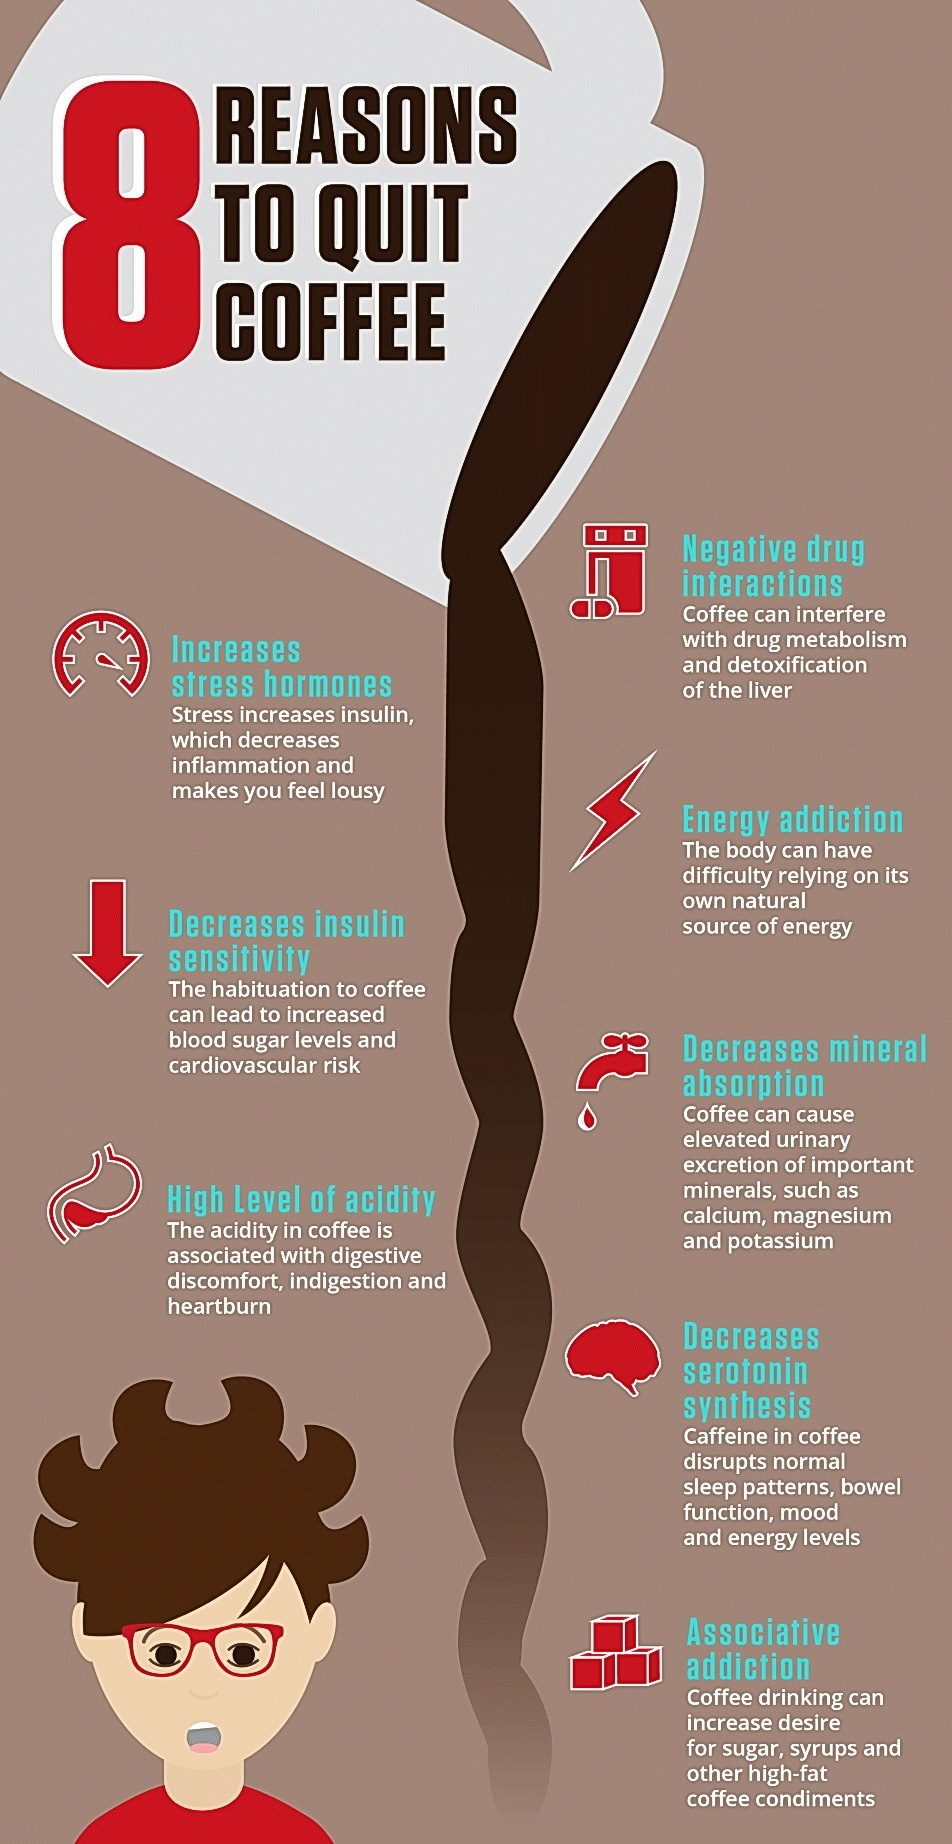 Reasons to stop drinking coffee